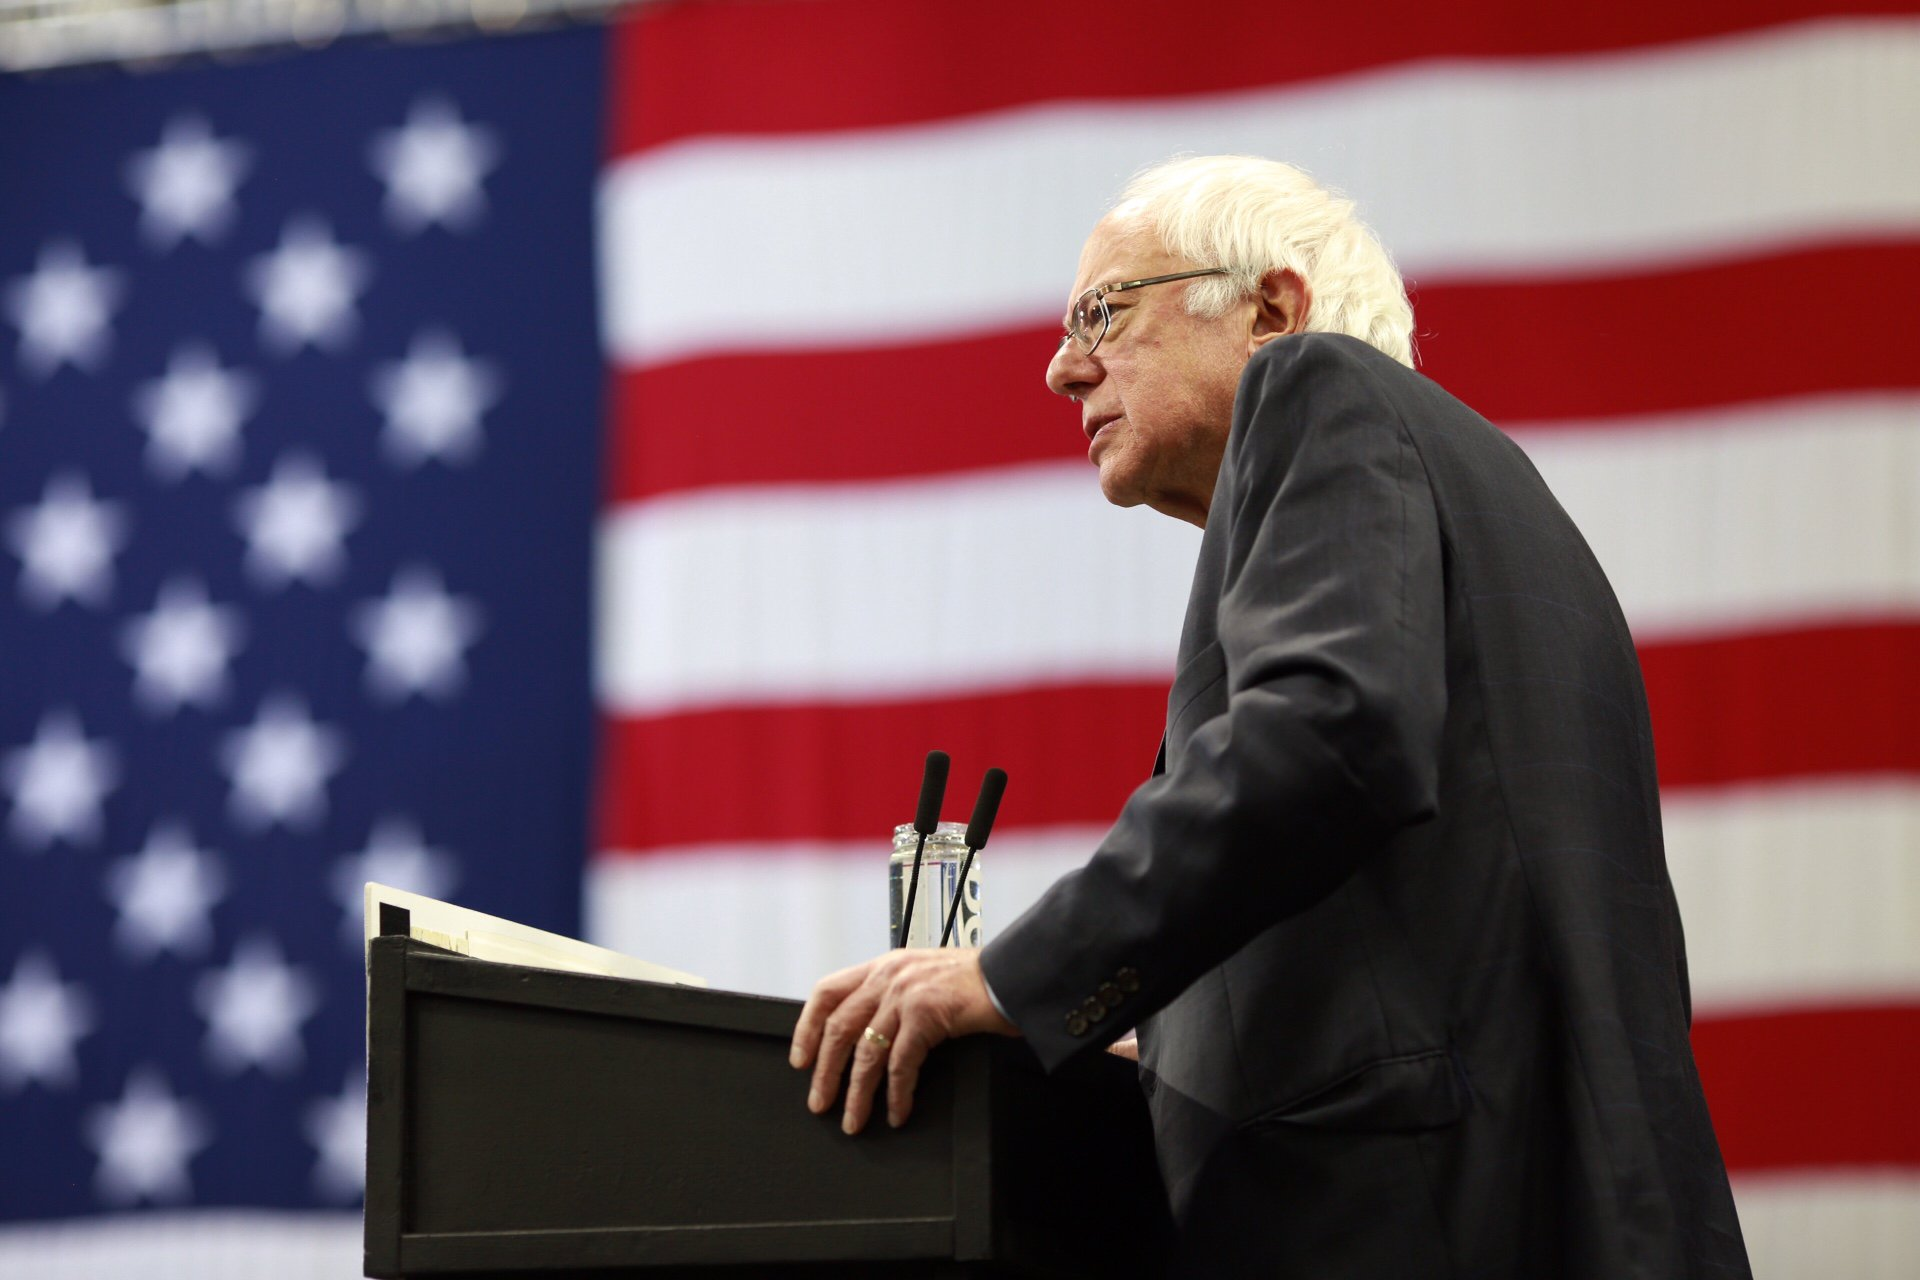 Democrat Bernie Sanders calls for a nationwide ban on fracking